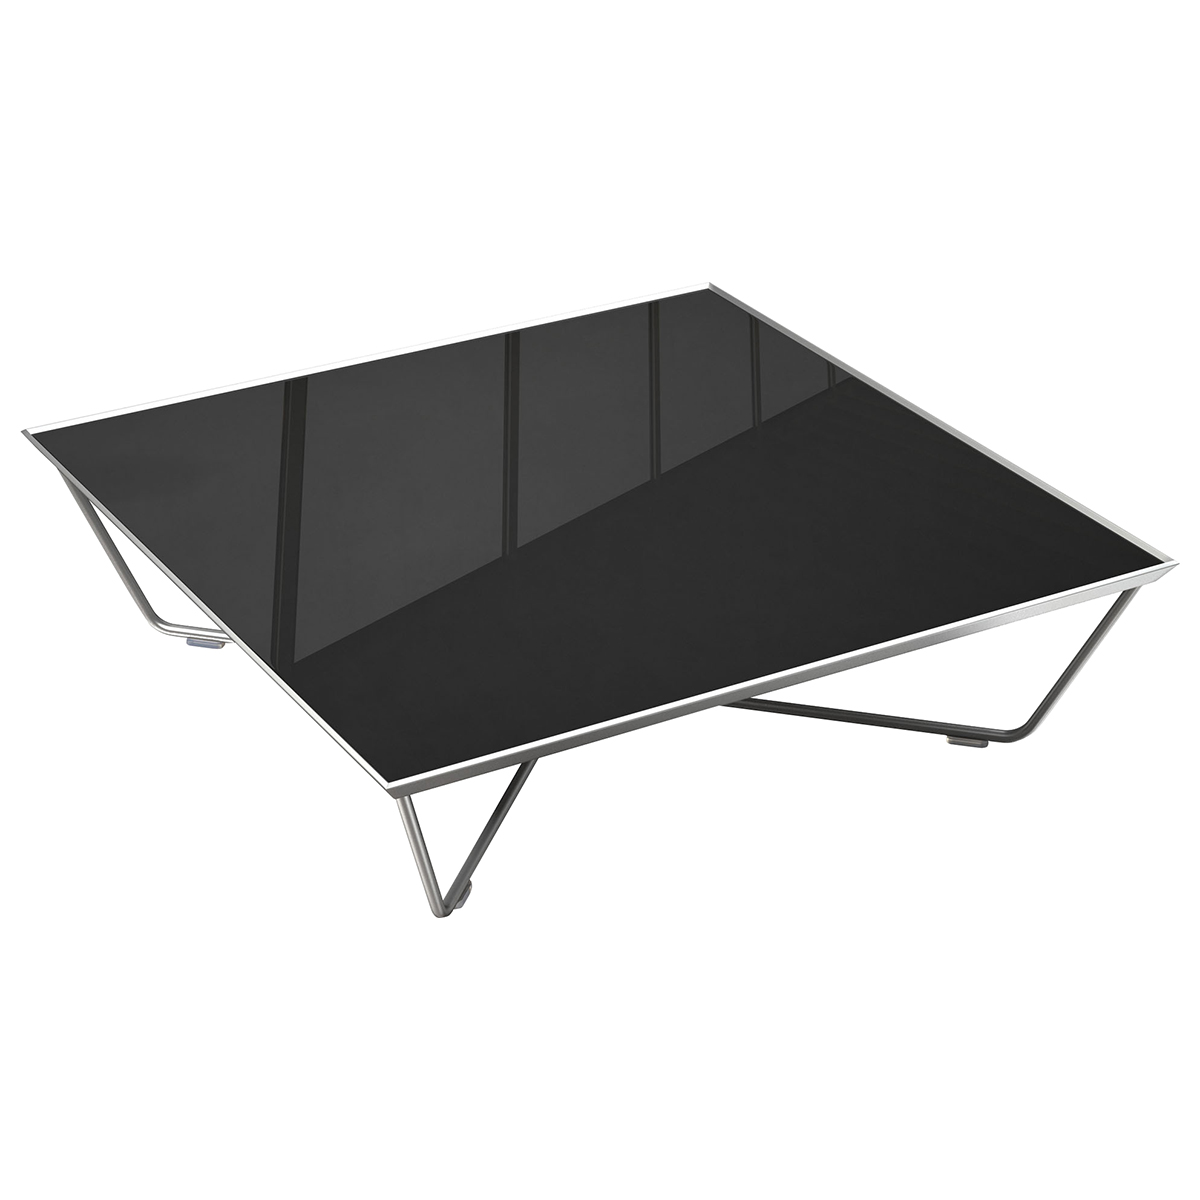 40 Metal Square Coffee Tables: Cale Square Coffee Table